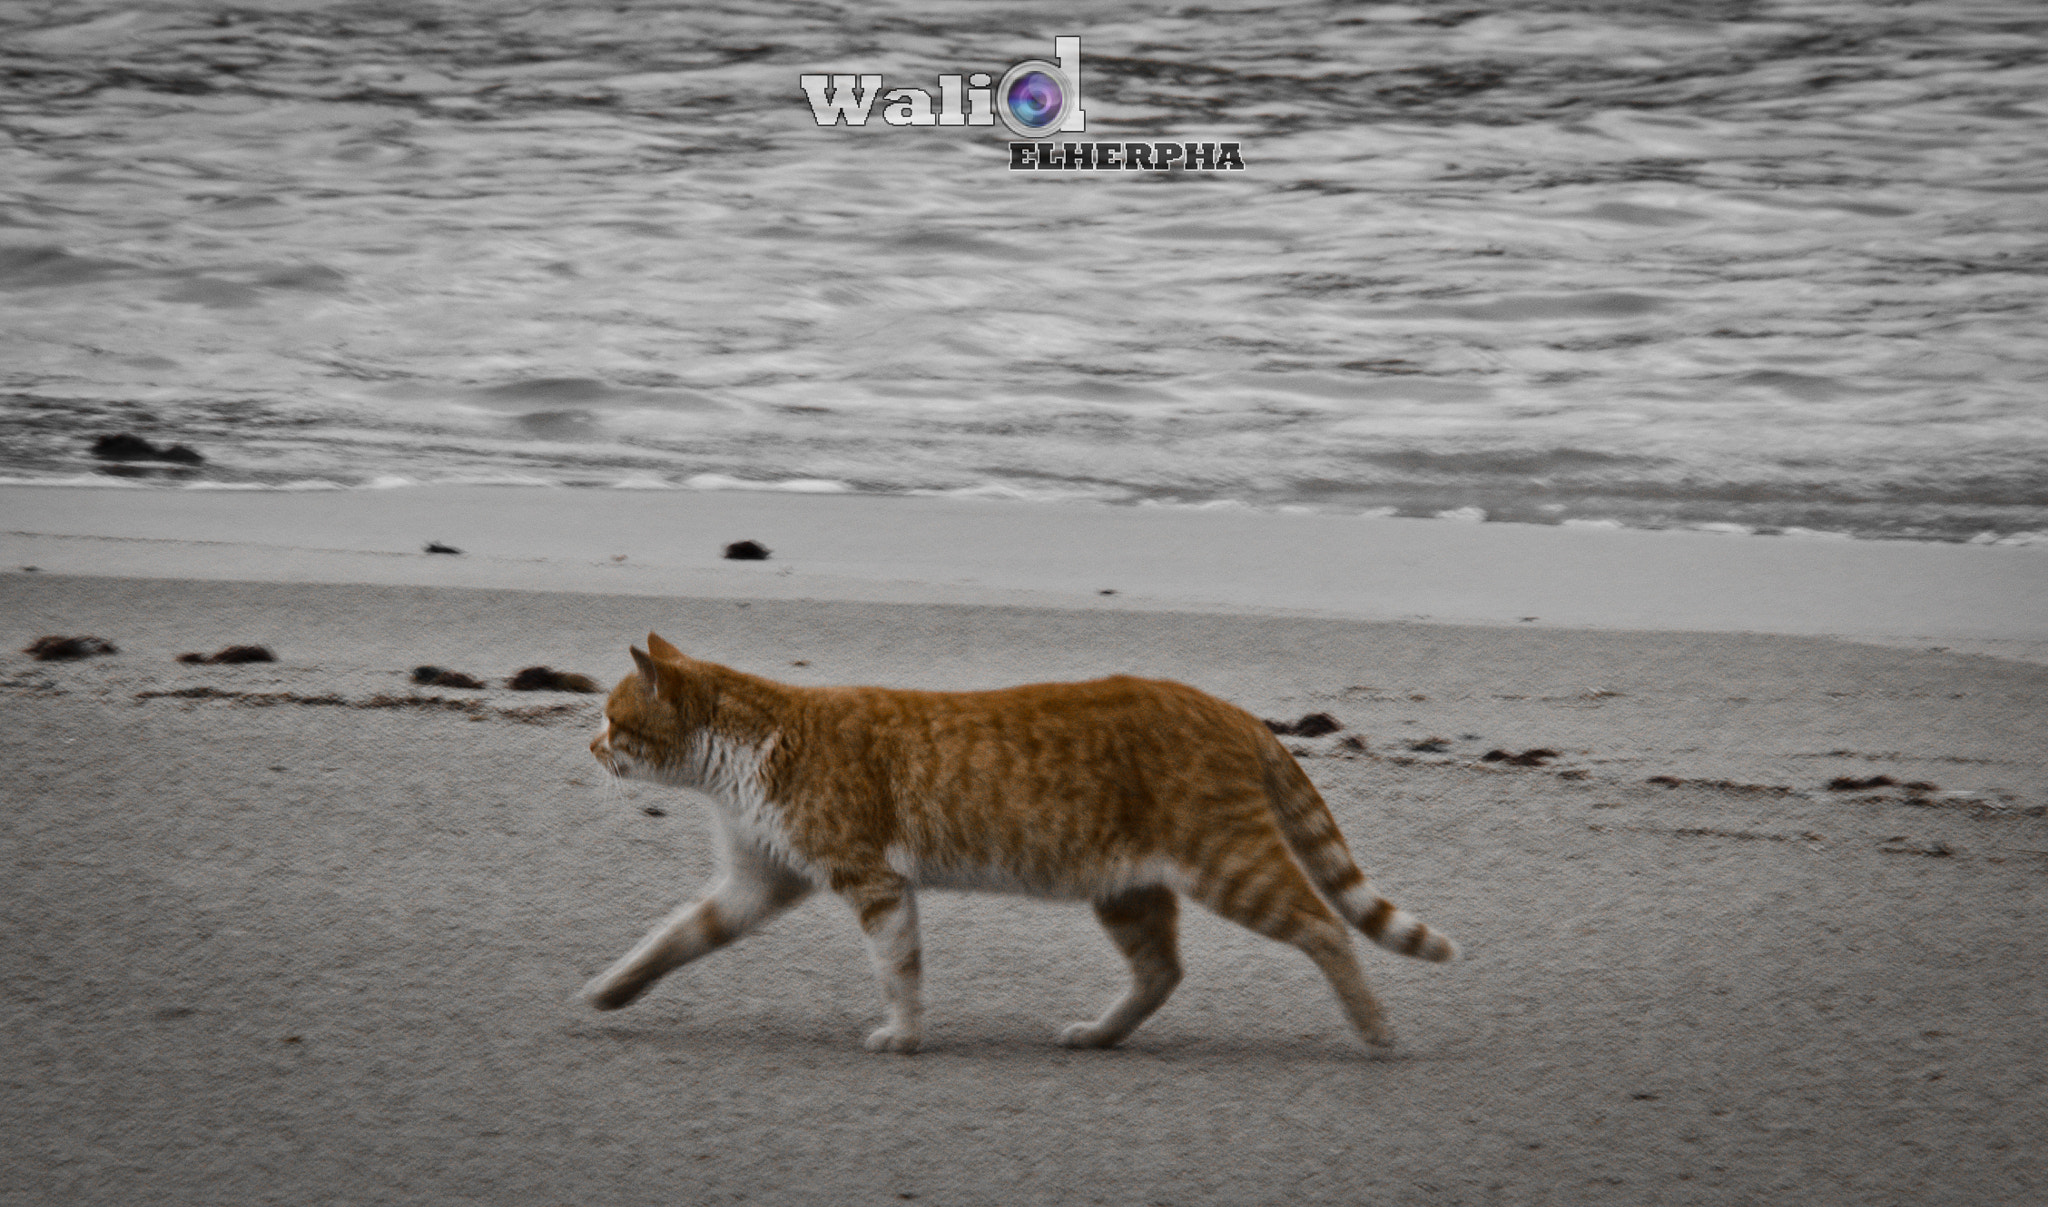 Photograph Alone on the Shore ! by Walid EL Herpha on 500px